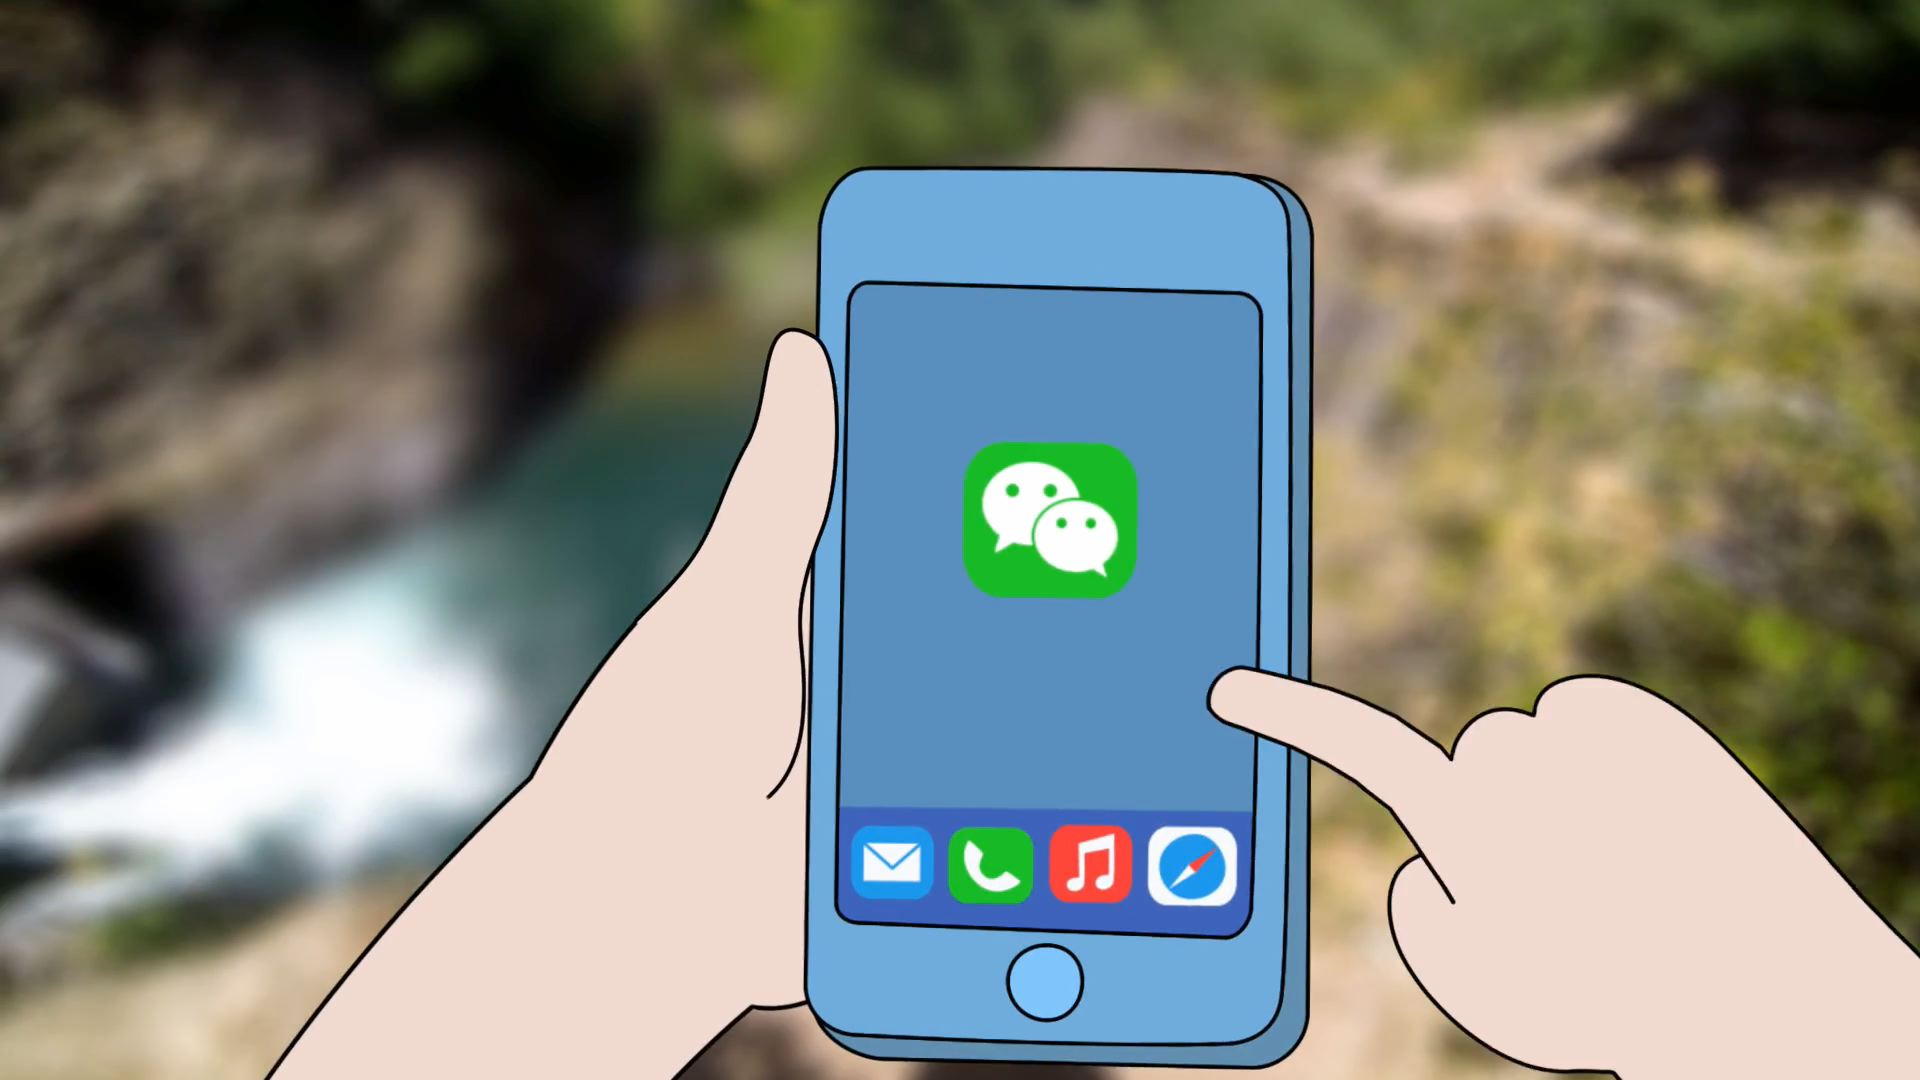 A 2D animated phone capturing a live-action video while cliff jumping